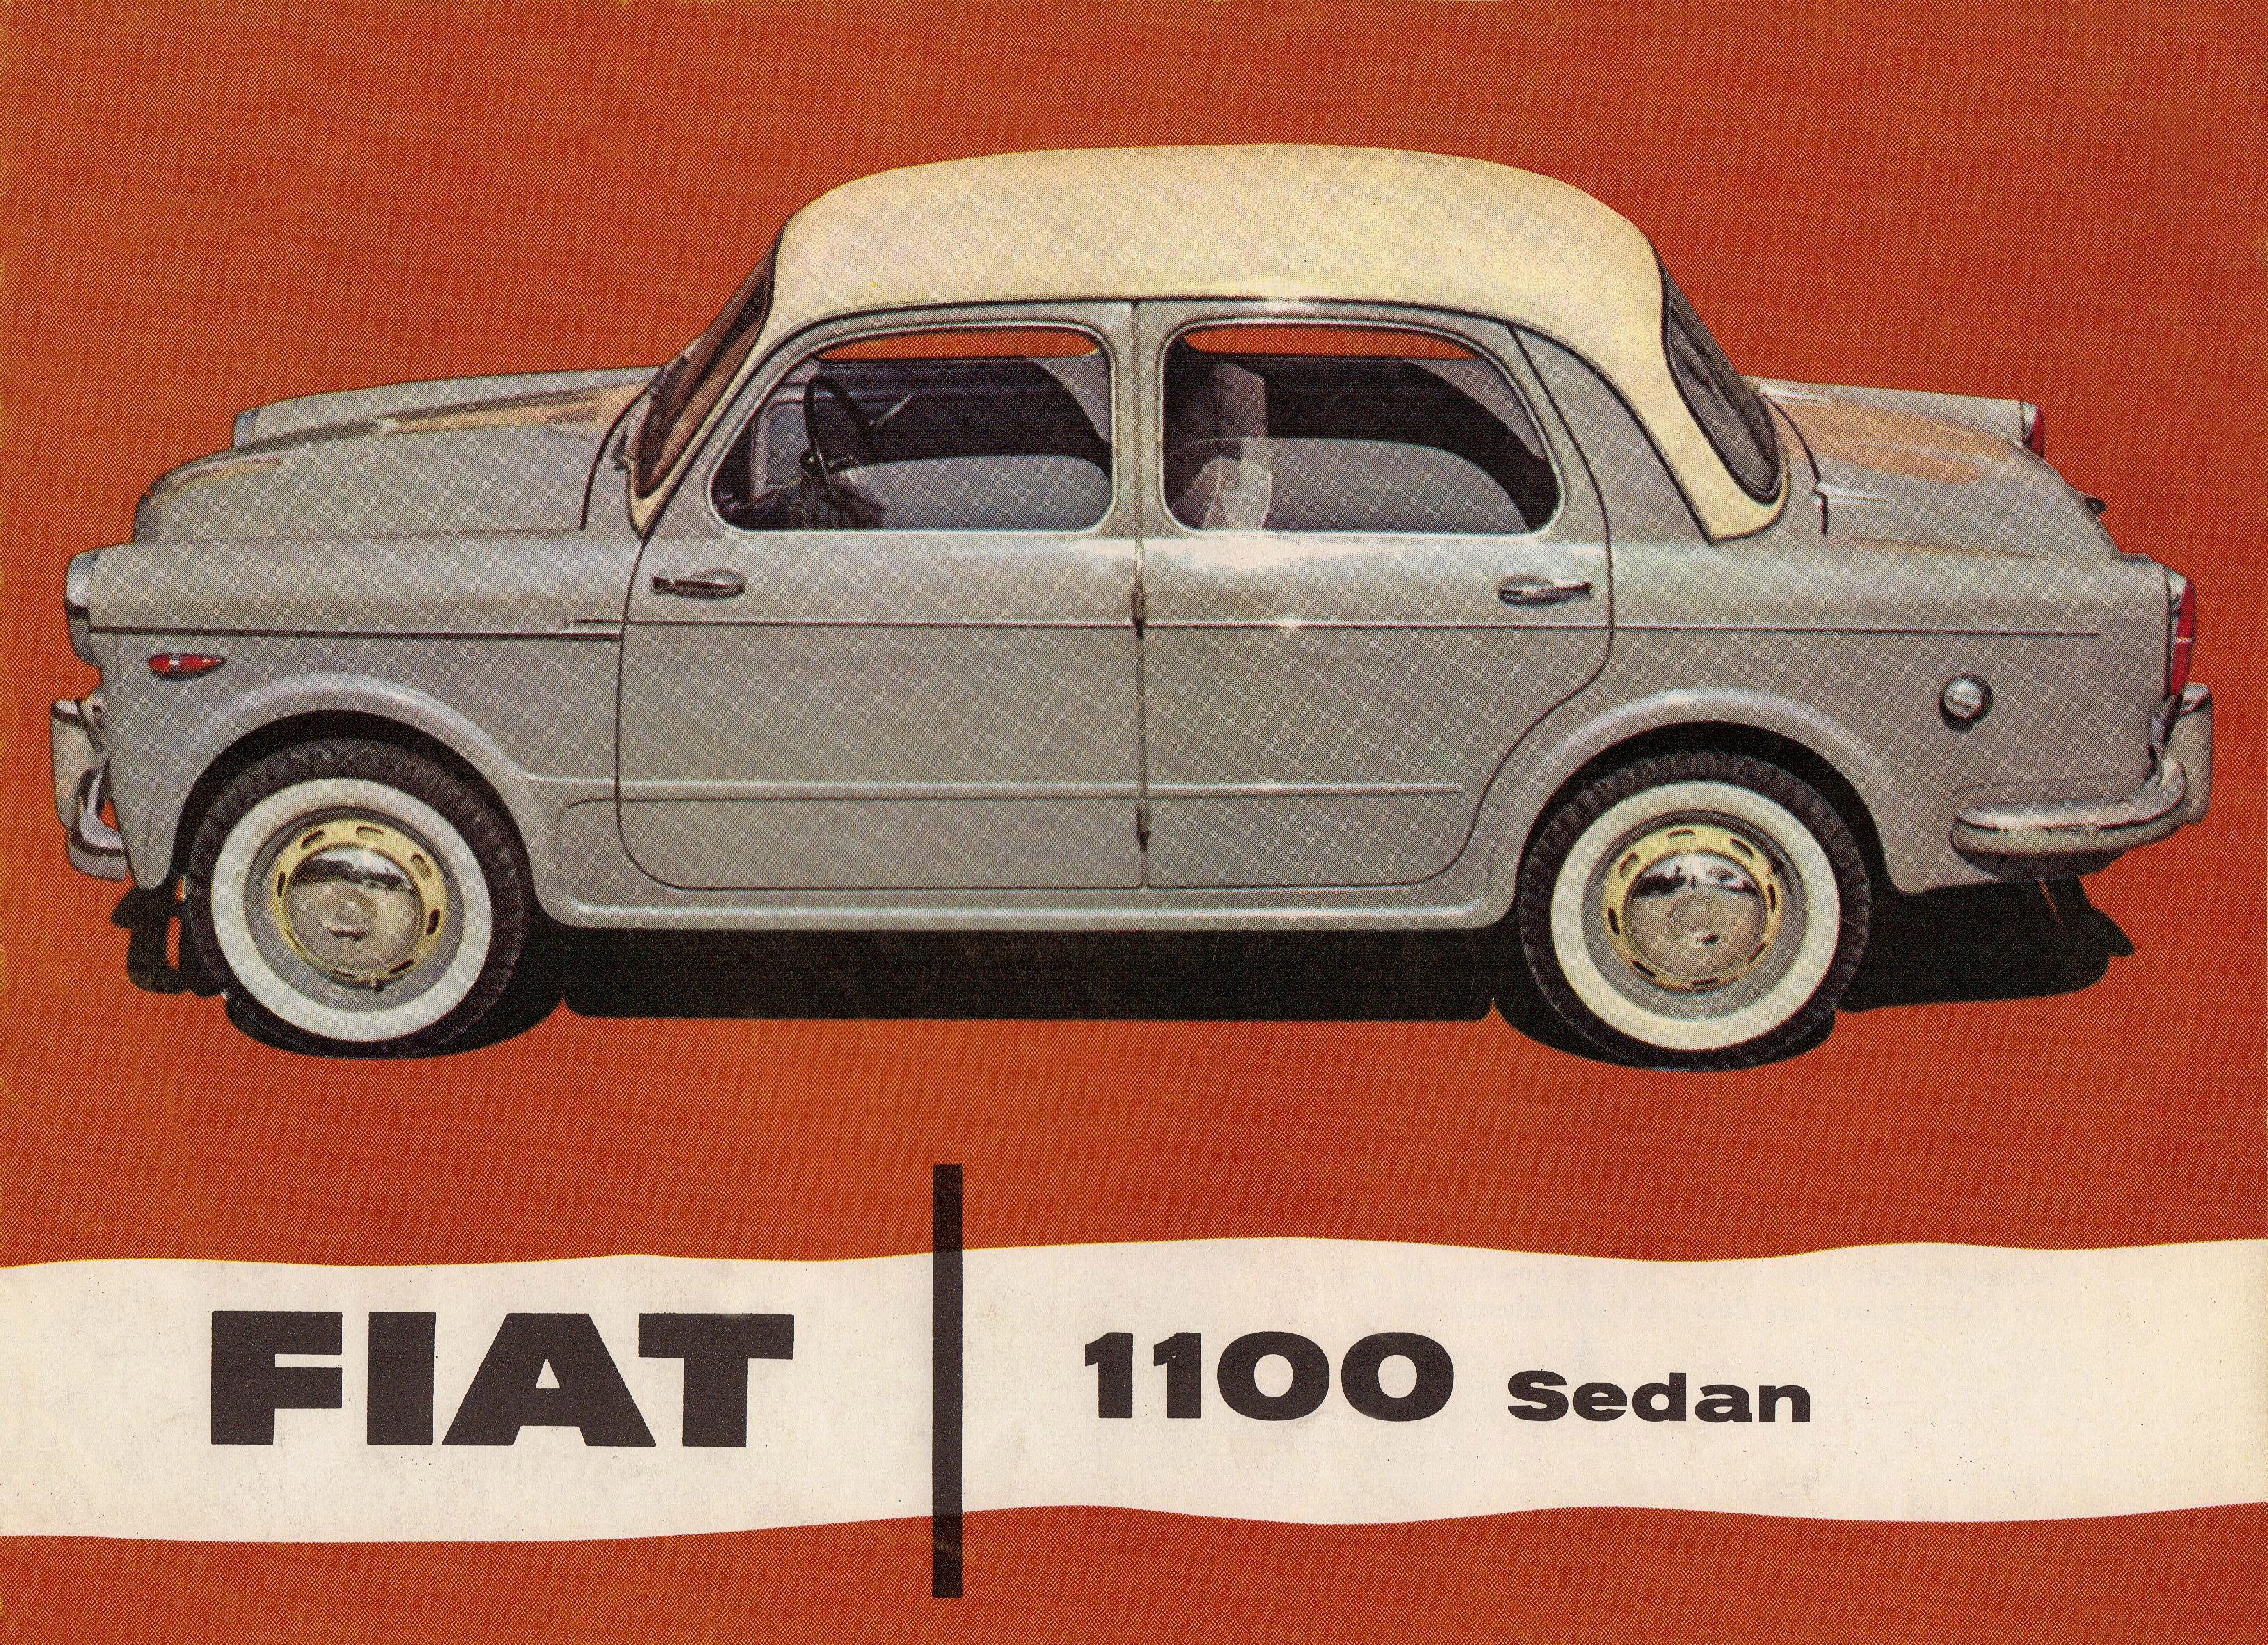 Peugeot bipper as well Uaz 469 2 likewise 1959 Fiat 500 Nuova Frog Eyed furthermore 3190 also Doblo. on fiat 500 for sale